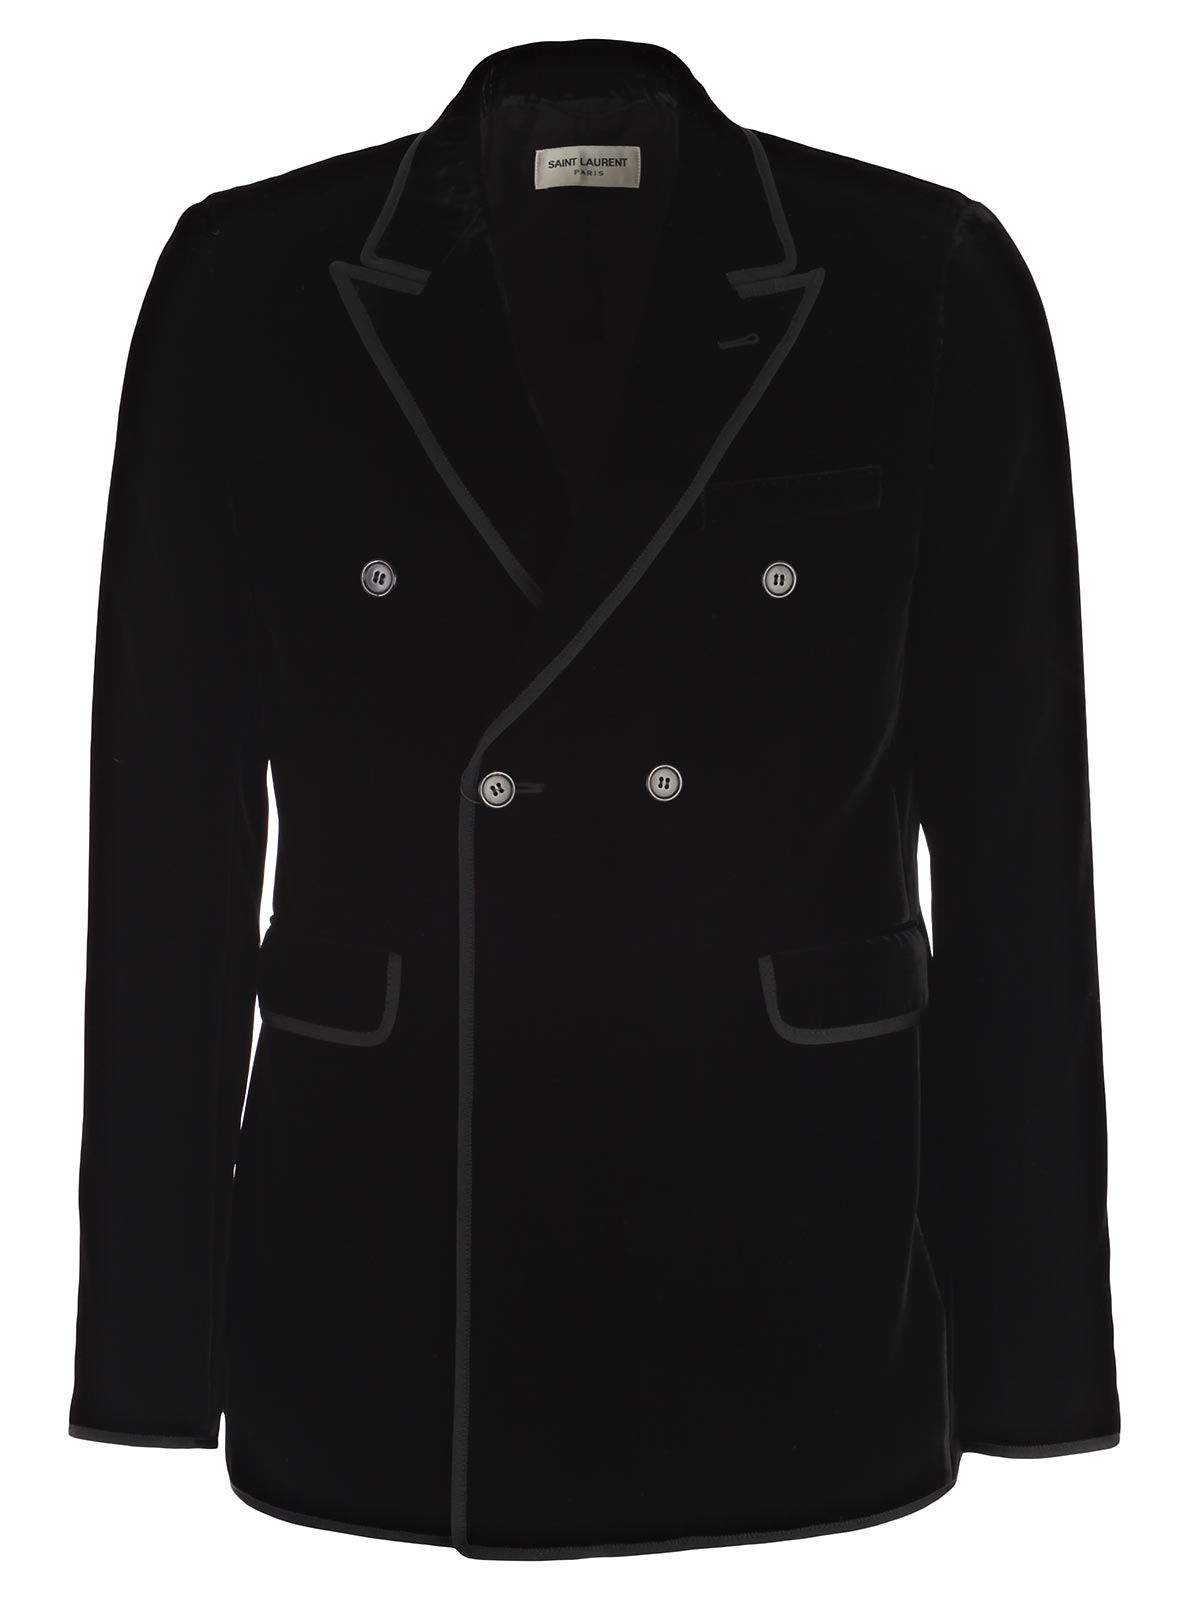 Picture of SAINT LAURENT JACKET GIACCA DOPPIO PETTO PROFILATA